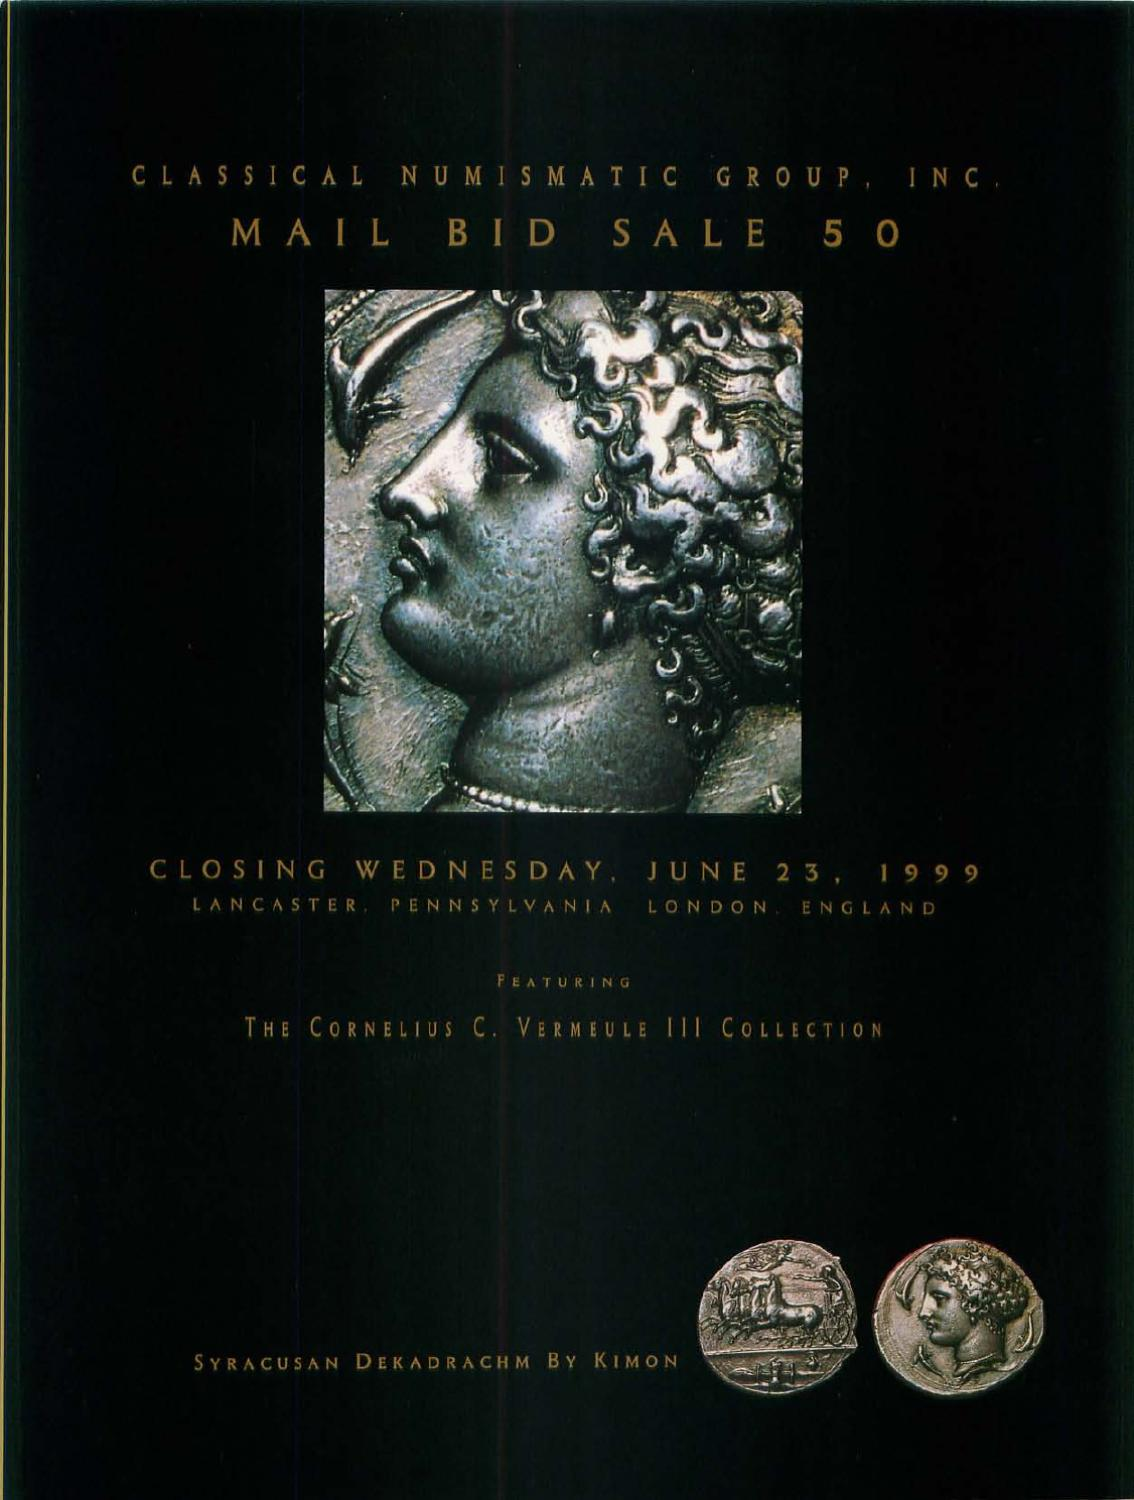 Cng50 By Classical Numismatic Group Llc Issuu